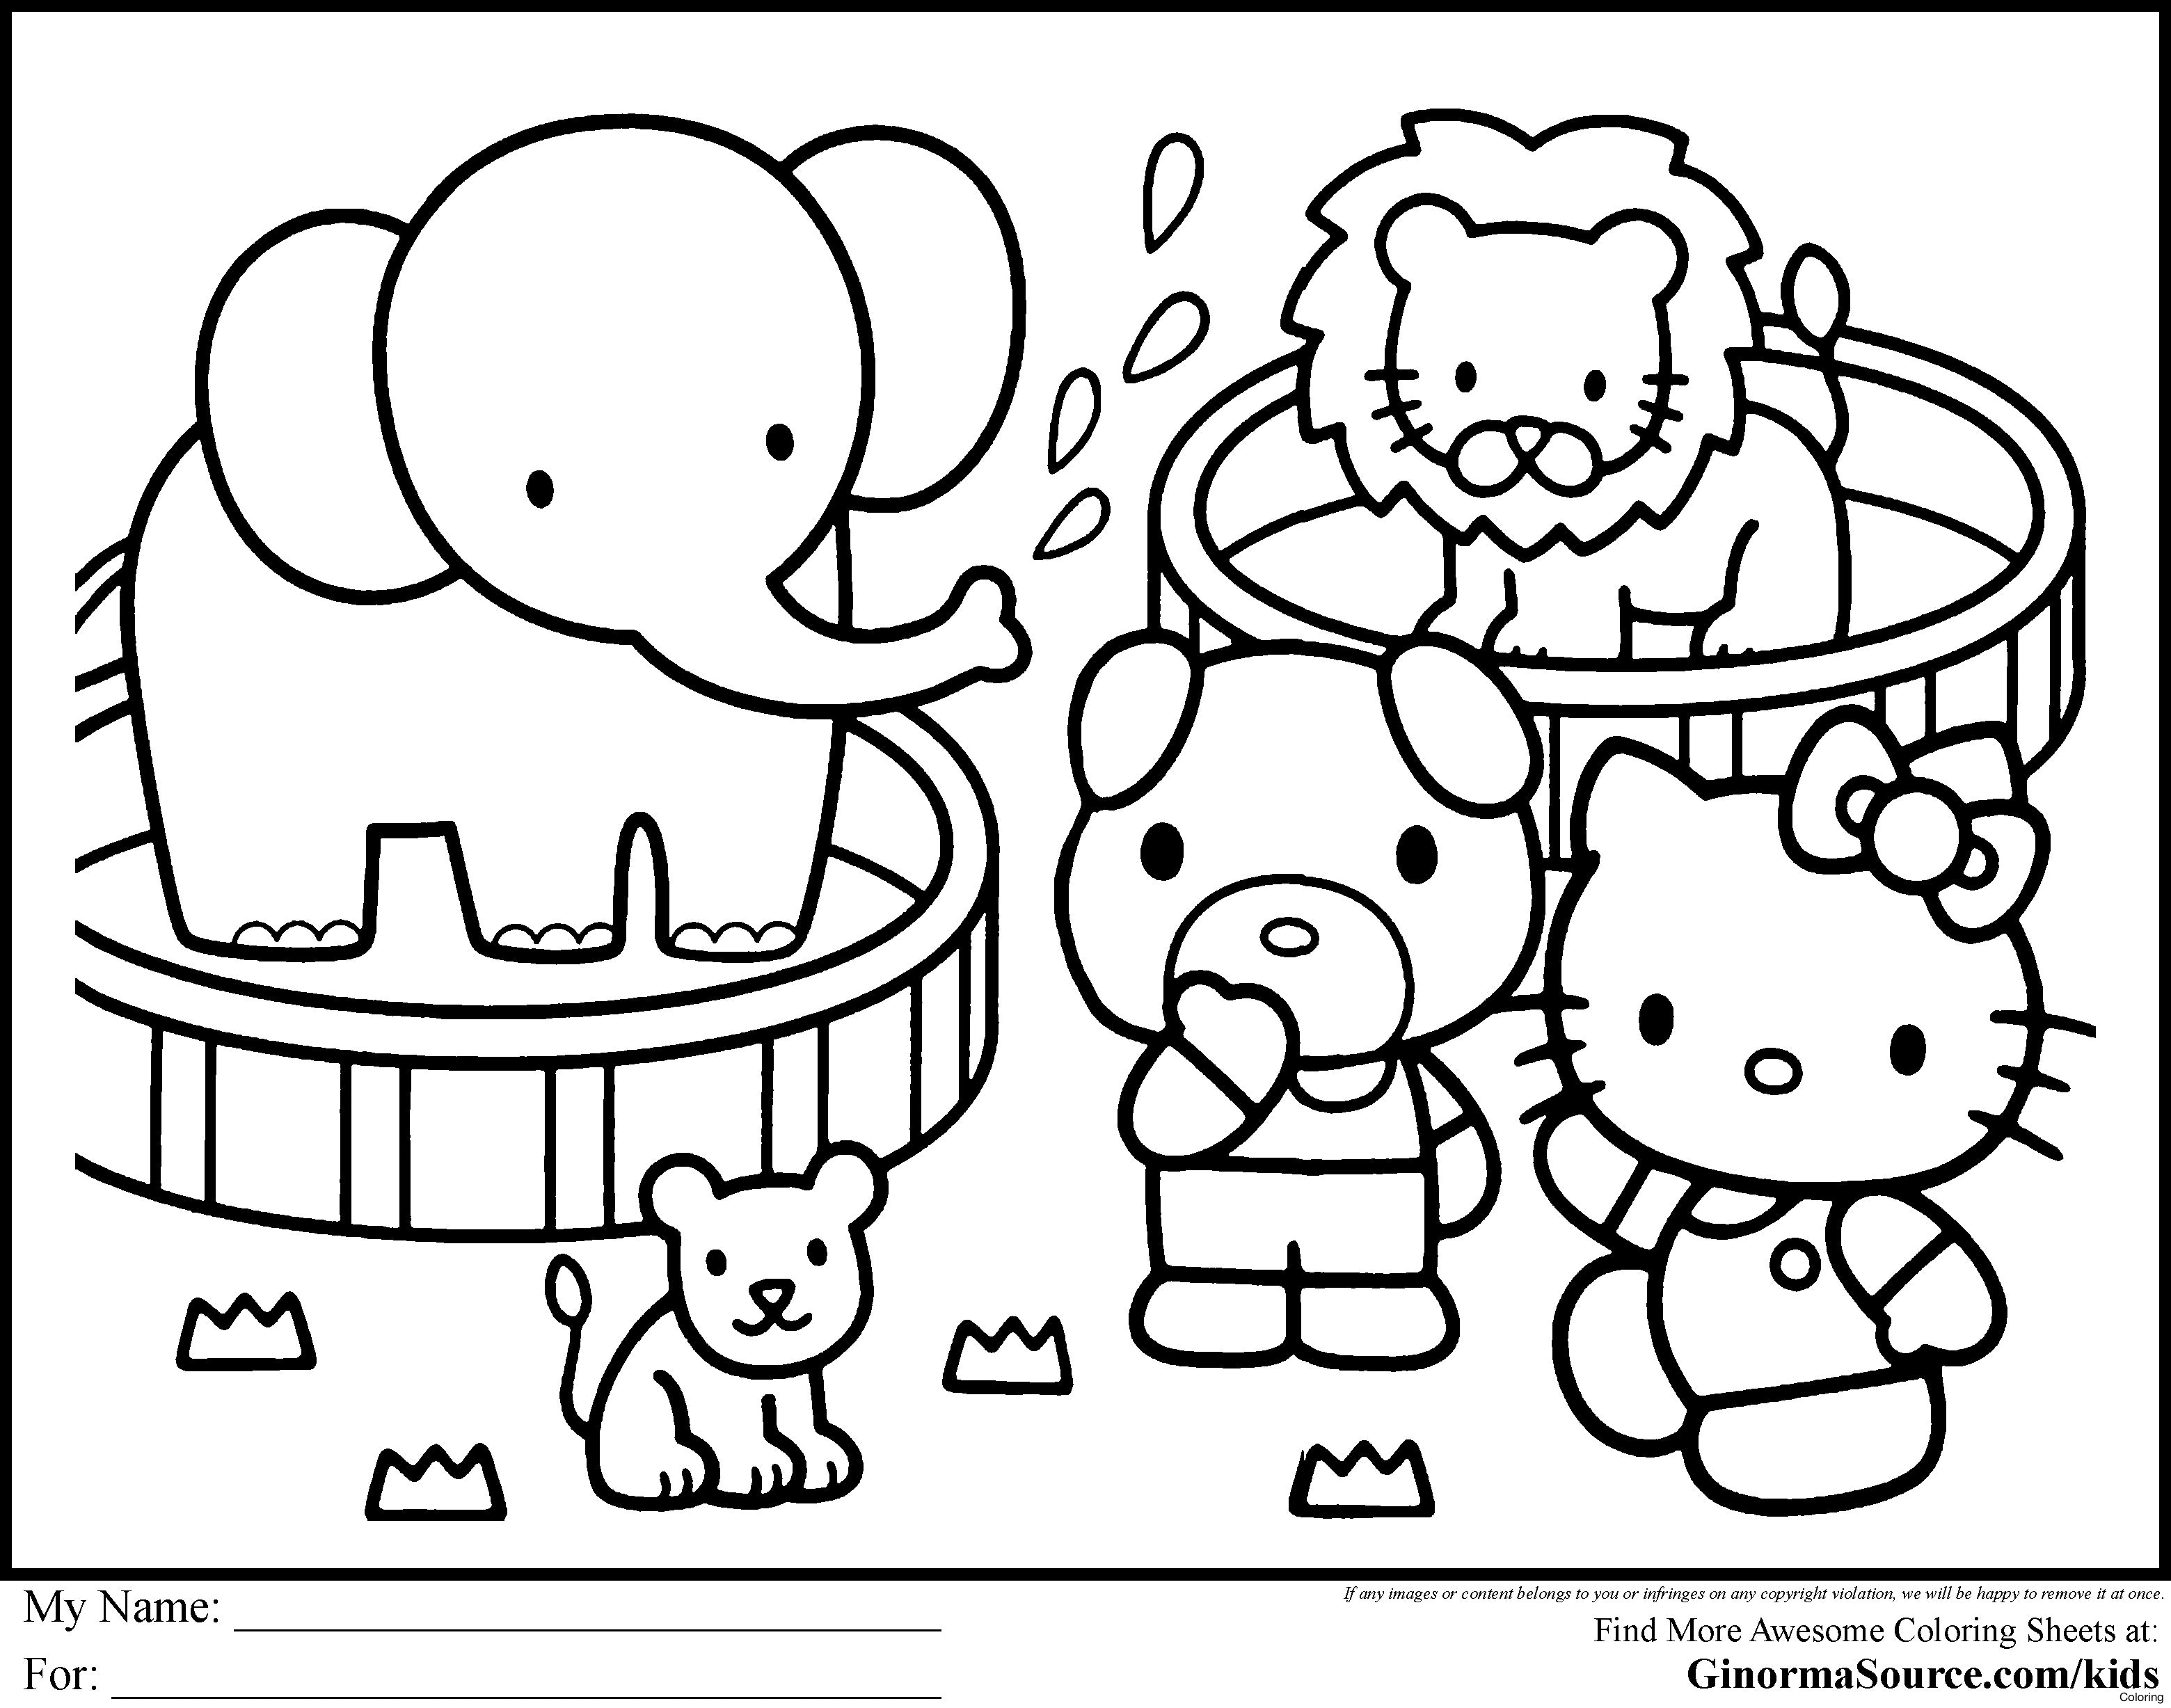 3120x2455 Coloring Games Online Colouring Pages Drawing Color 2 Kid 20f